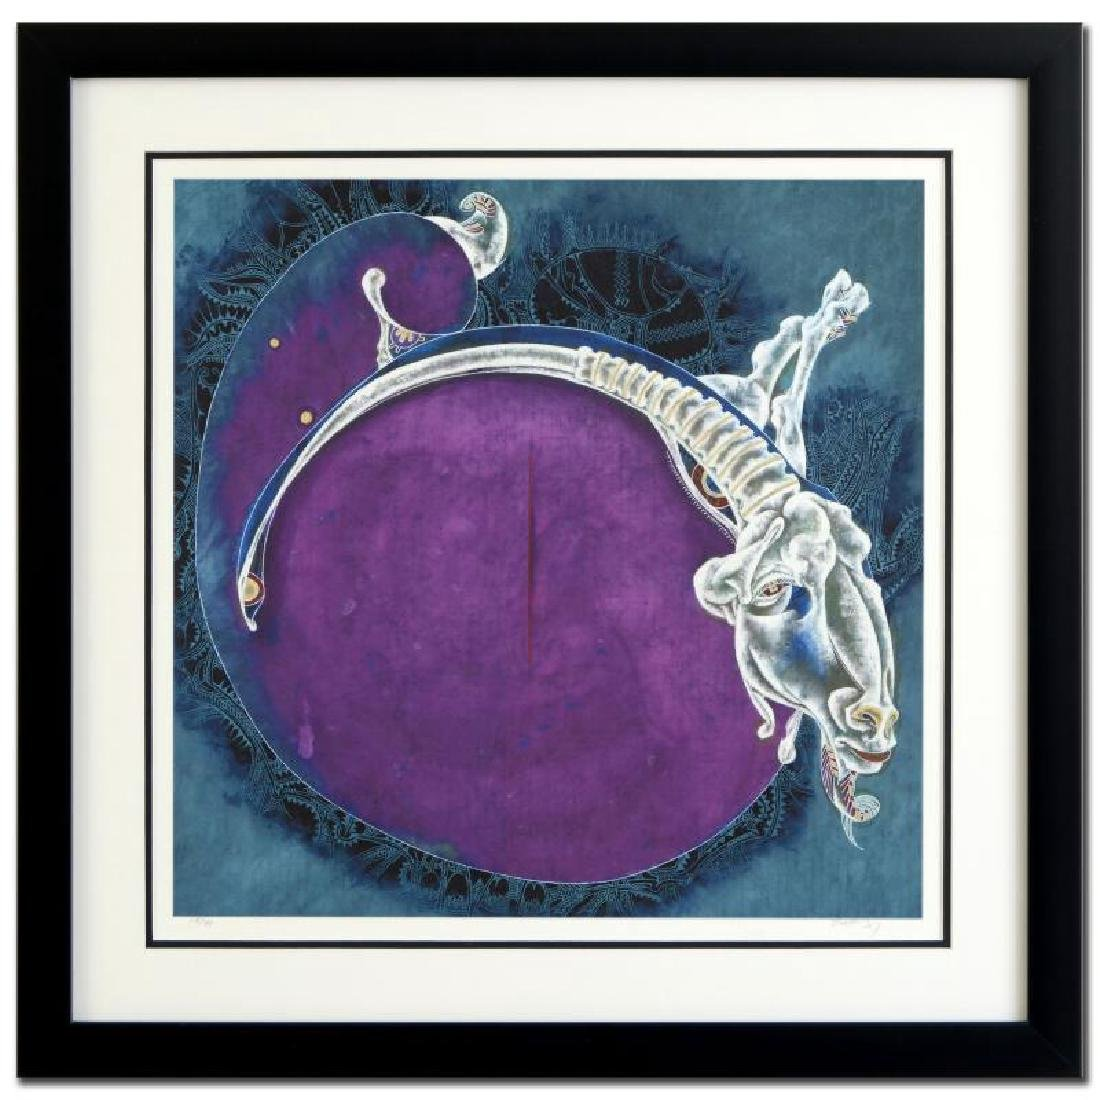 """Lu Hong - """"Aries (3/21 - 4/20)"""" Framed Limited Edition"""